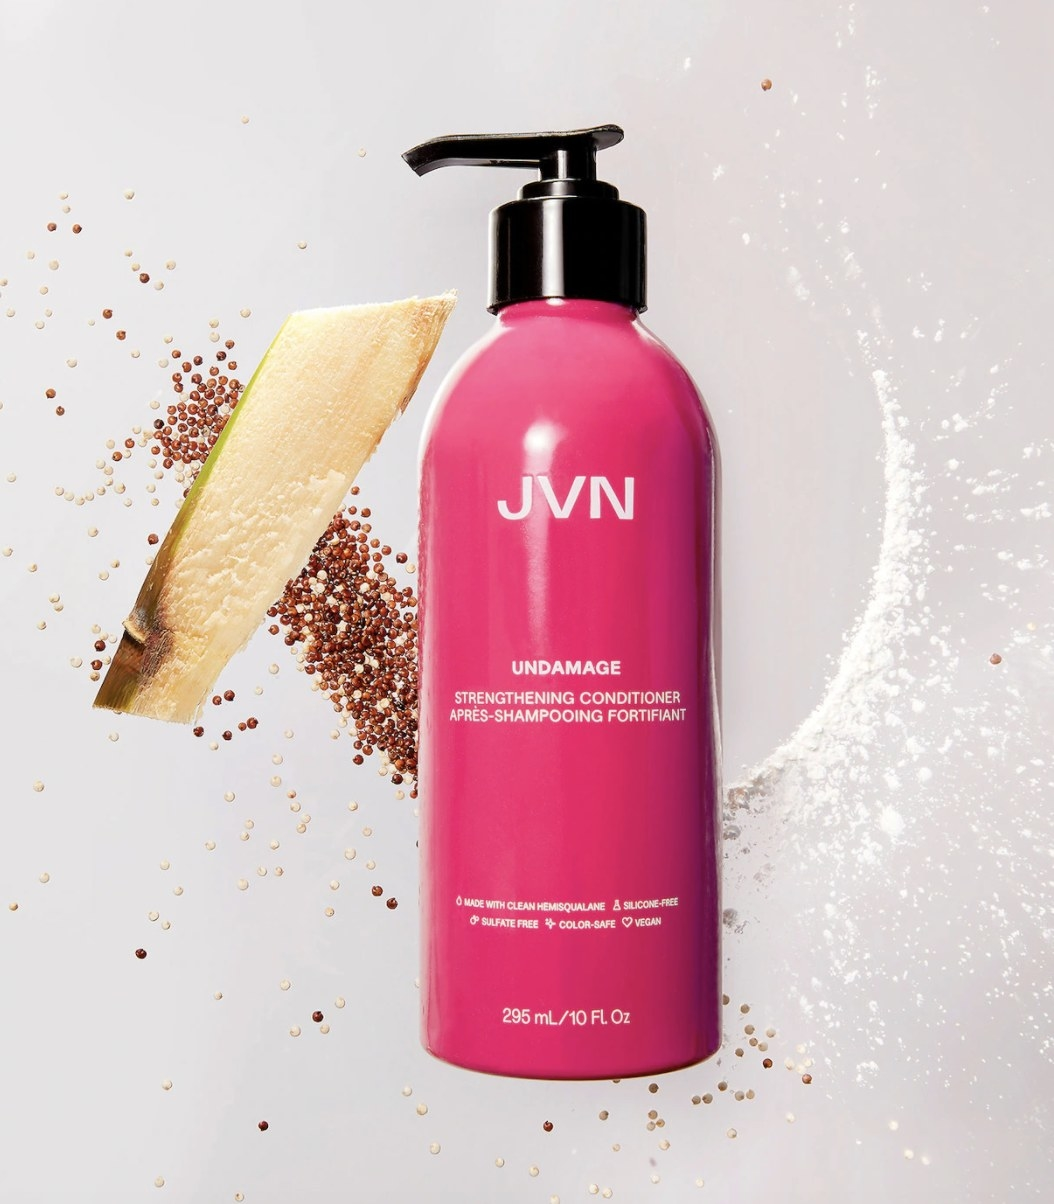 """The pink bottle with a black pump spout says """"JVN UNDAMAGE"""" and has has some of the items in the formula rested against the background behind the bottle"""